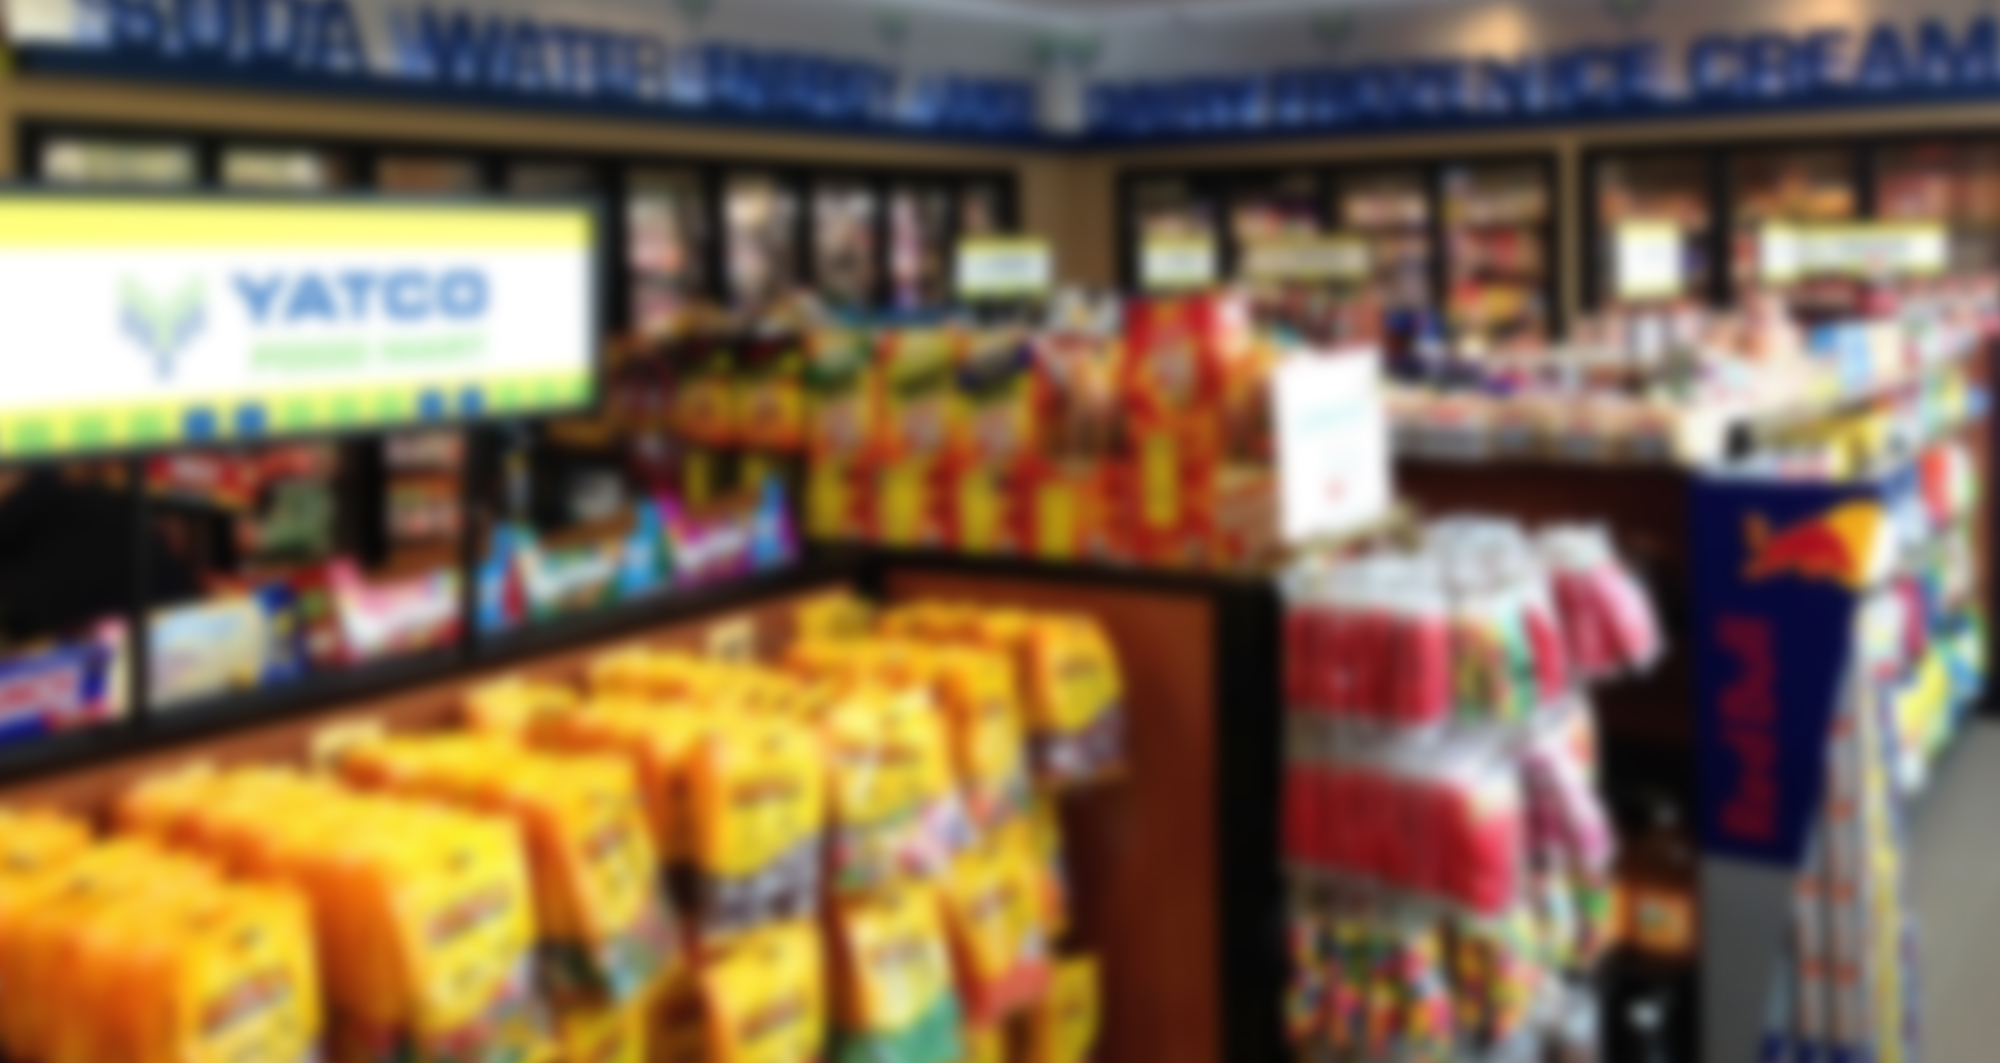 inside of convenience store, Yatco Food Mart store, in-store display Massachusetts, in-store display design MA, Yatco Food Mart MA